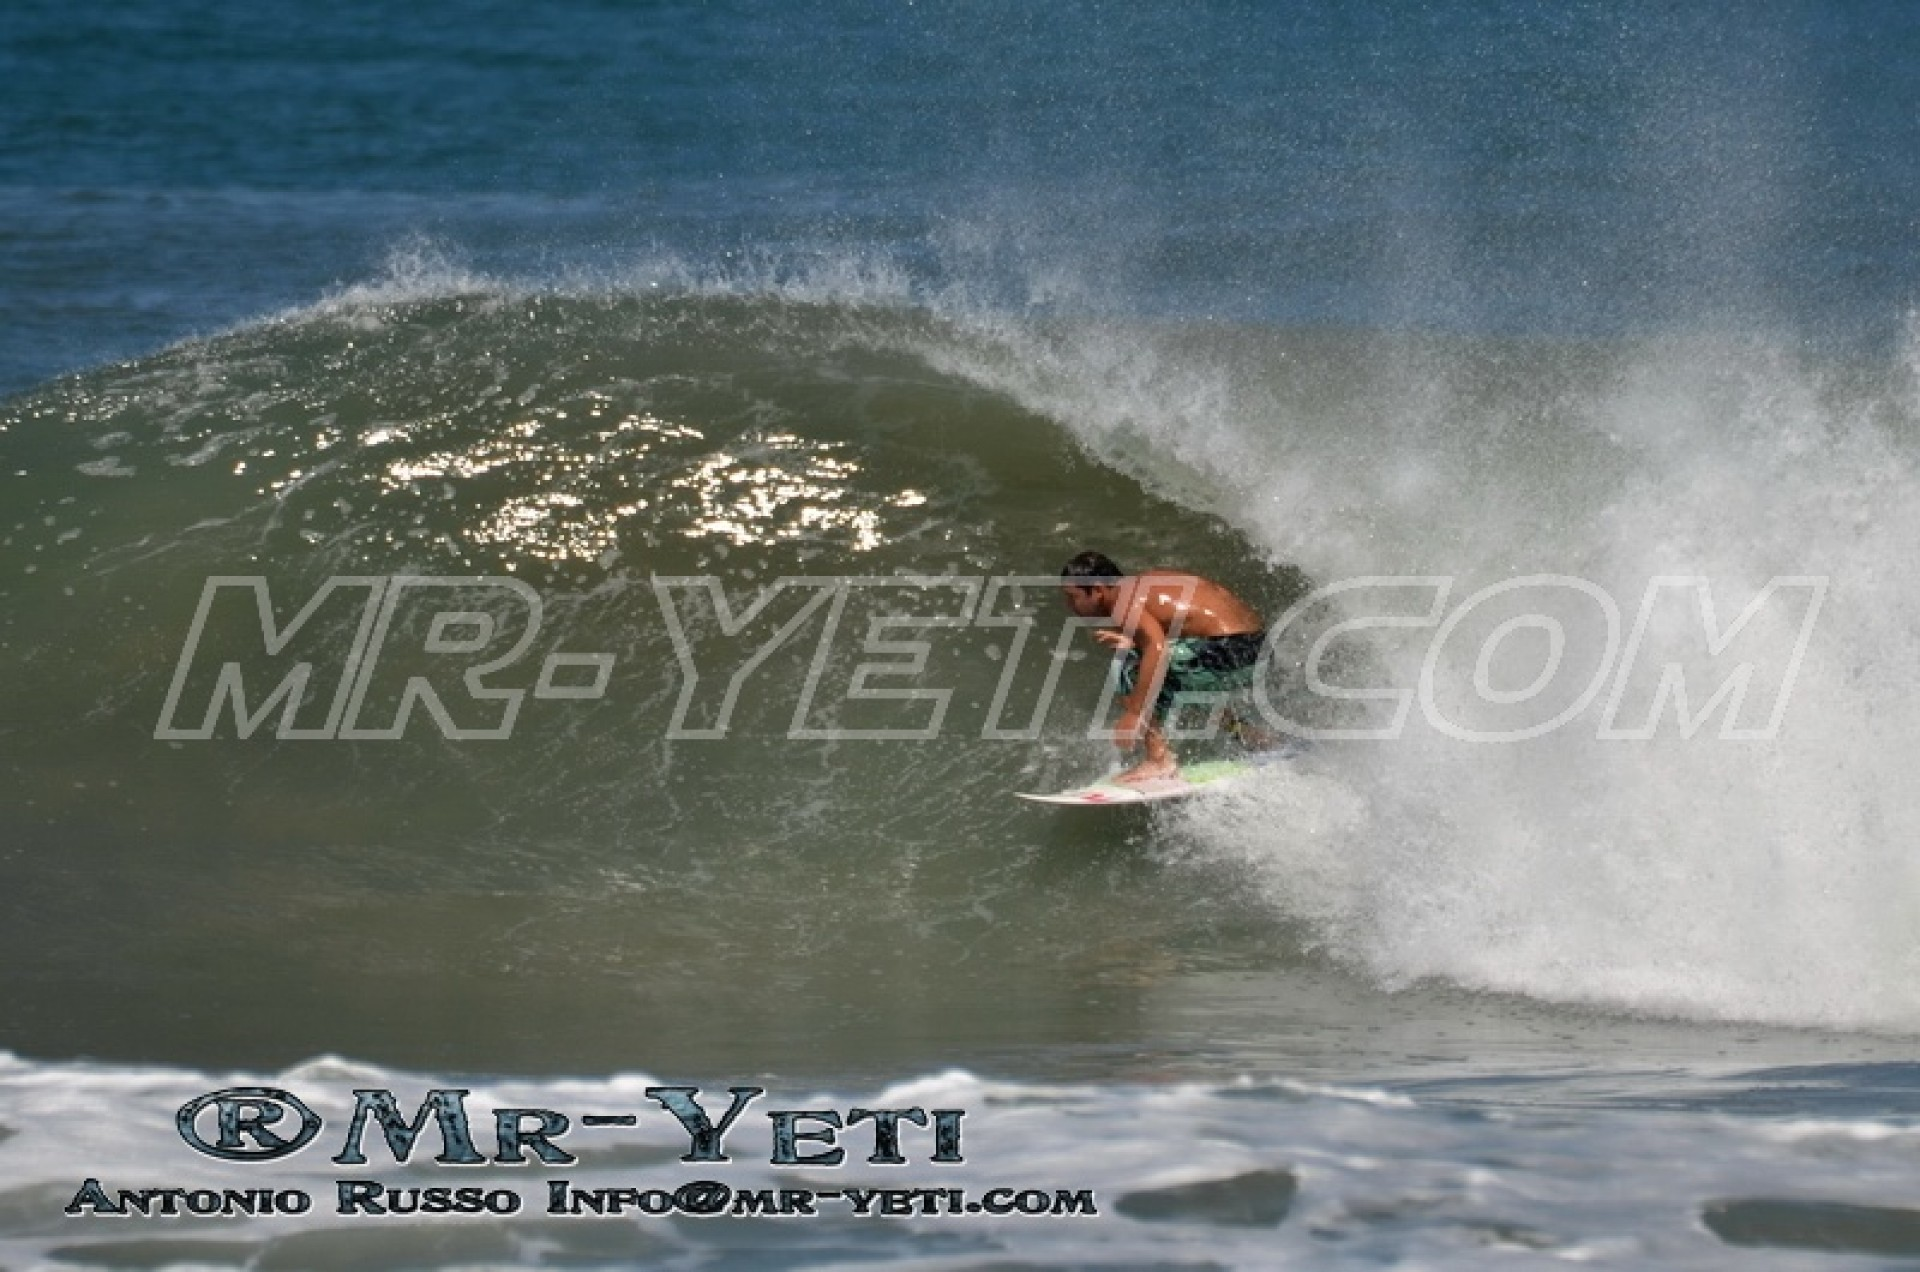 Mr-Yeti's photo of Playa Santa Teresa